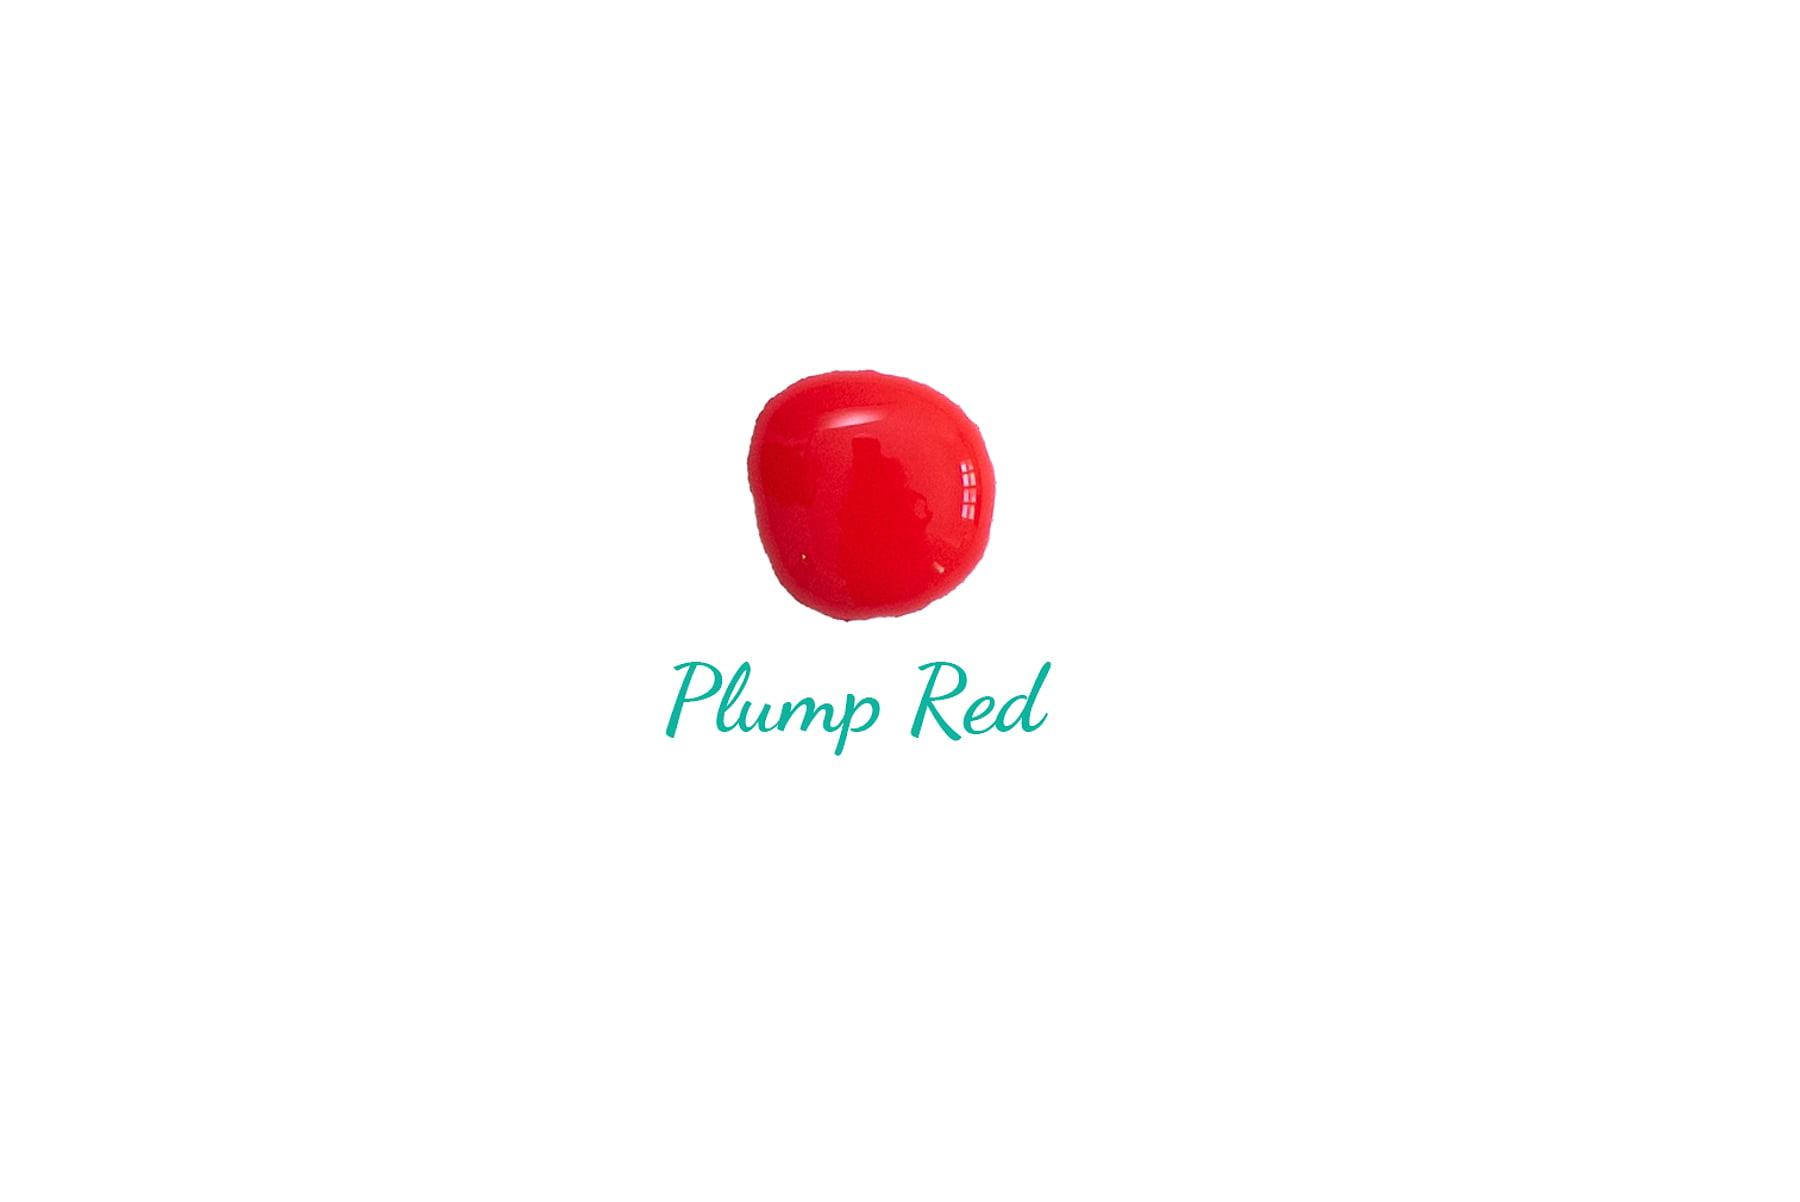 Plump Red